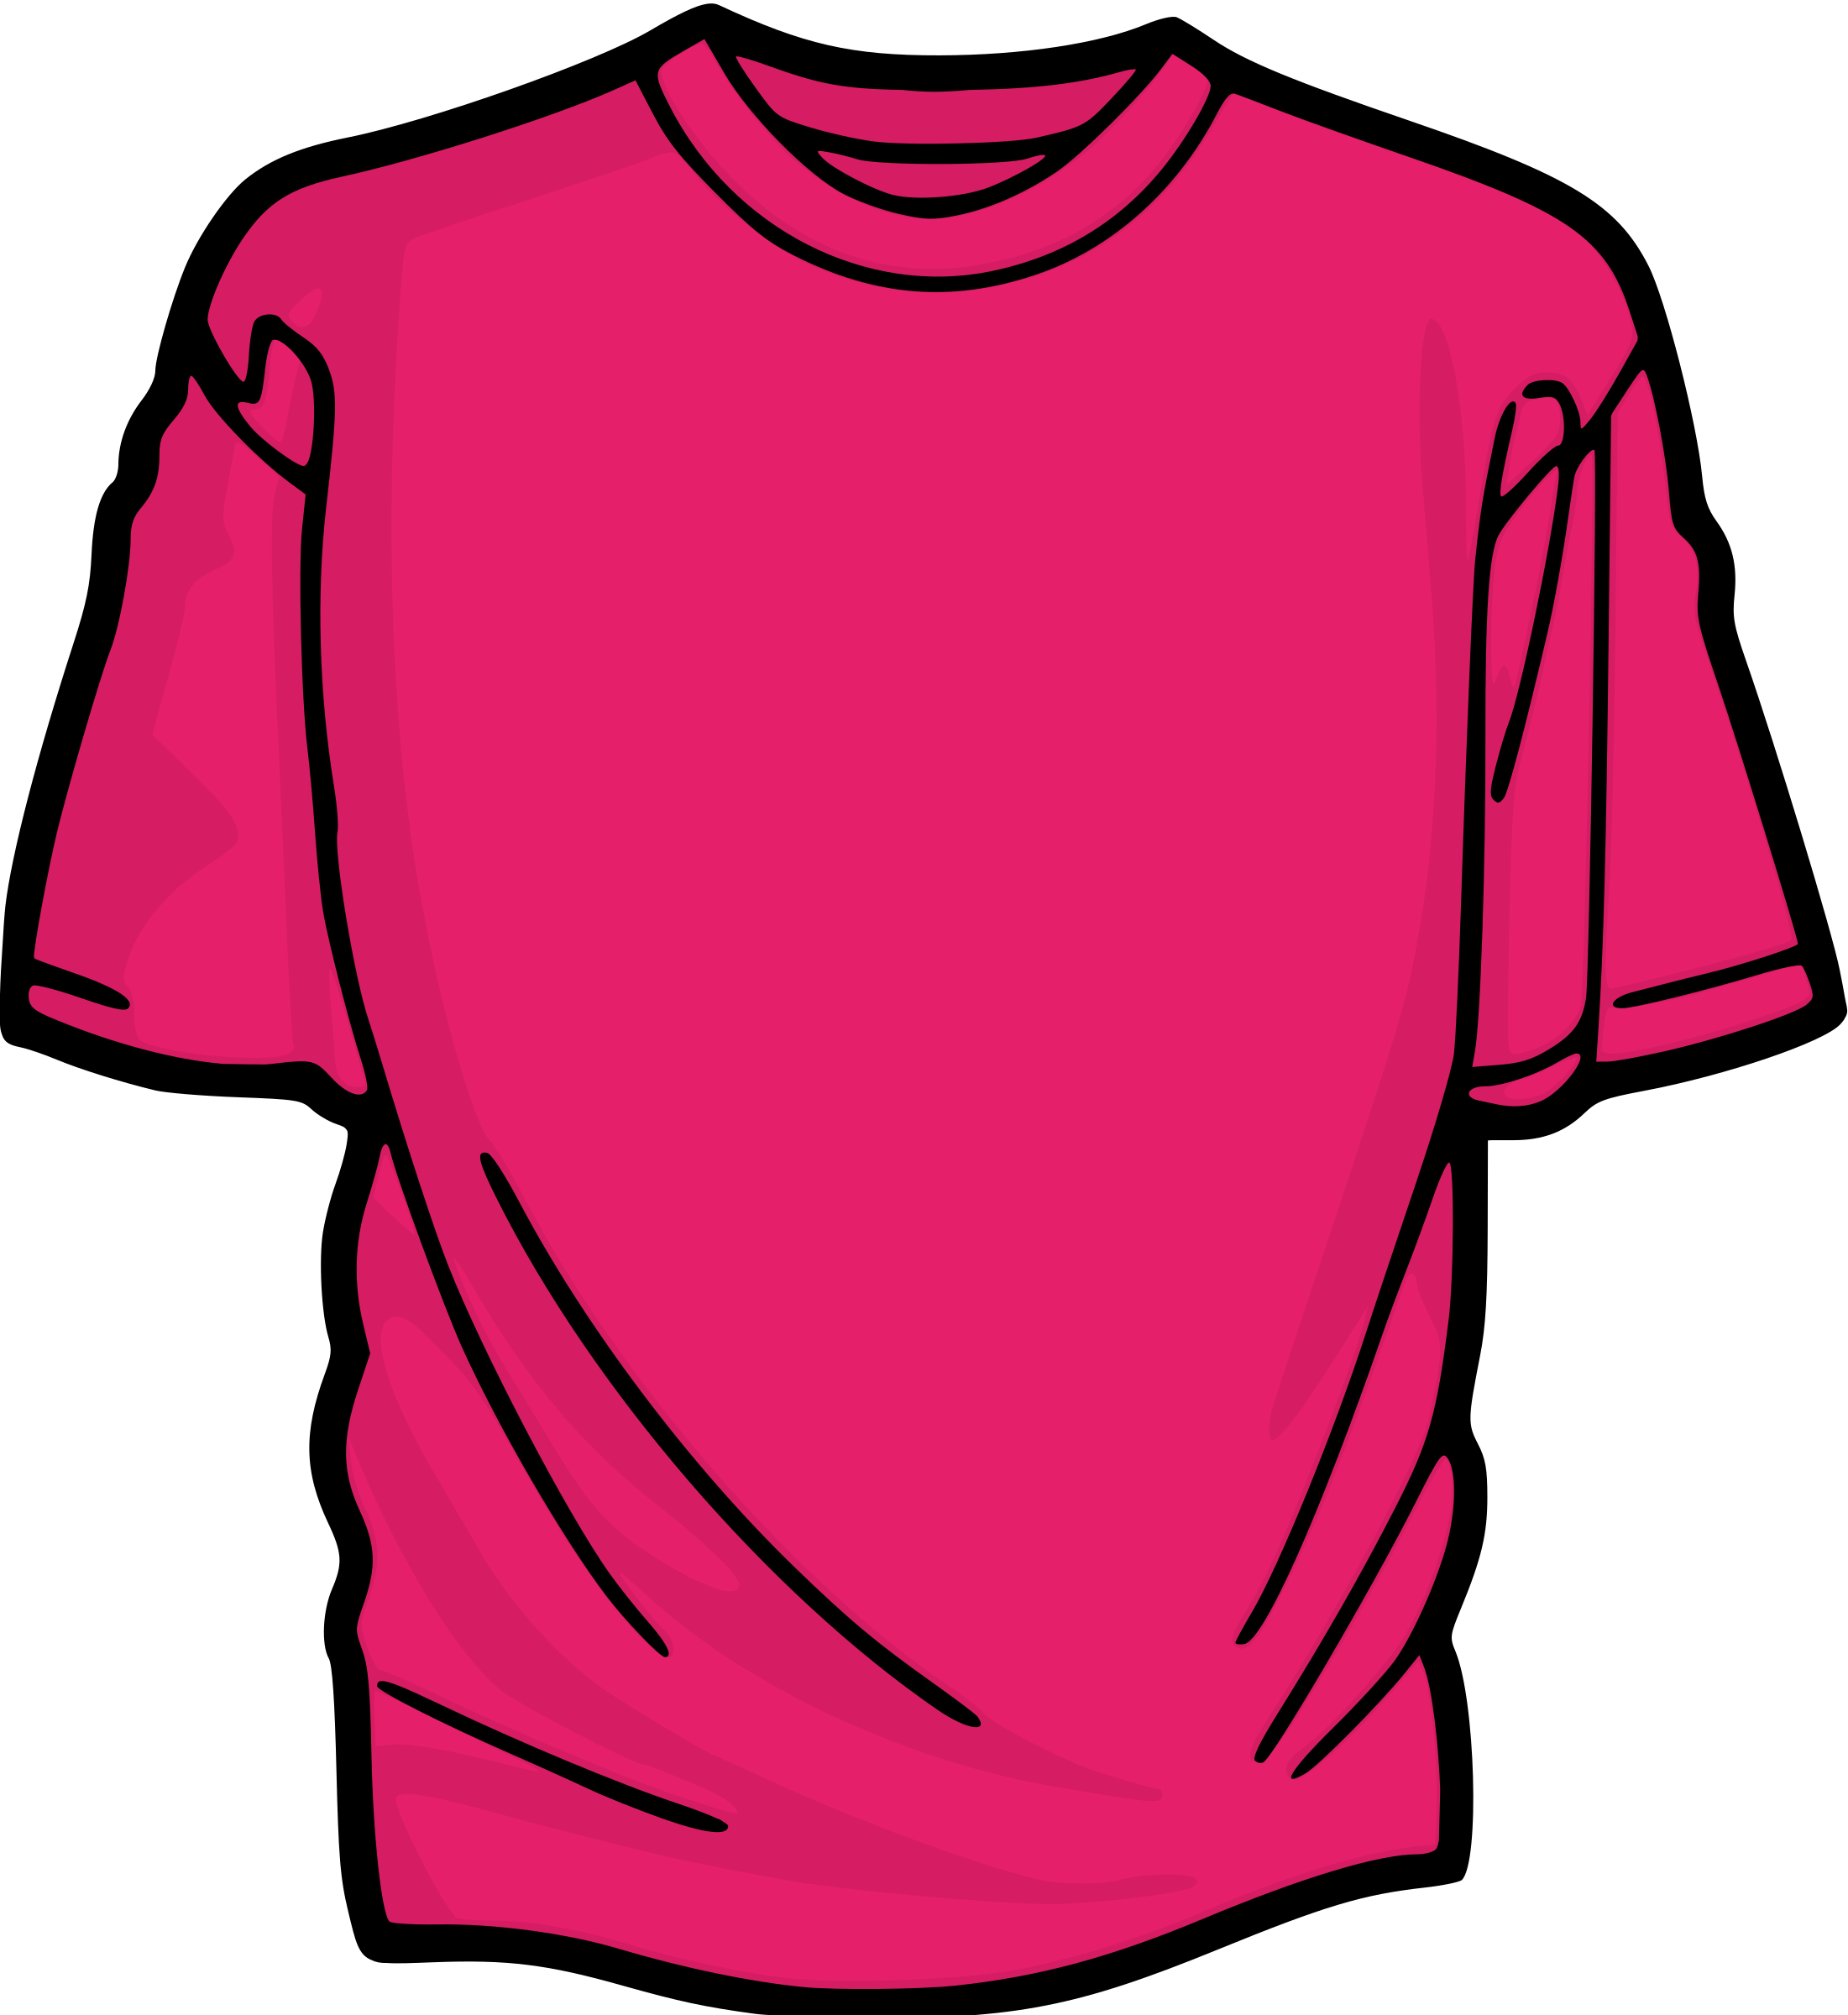 Pink t big image. Shirt clipart neon shirt picture library